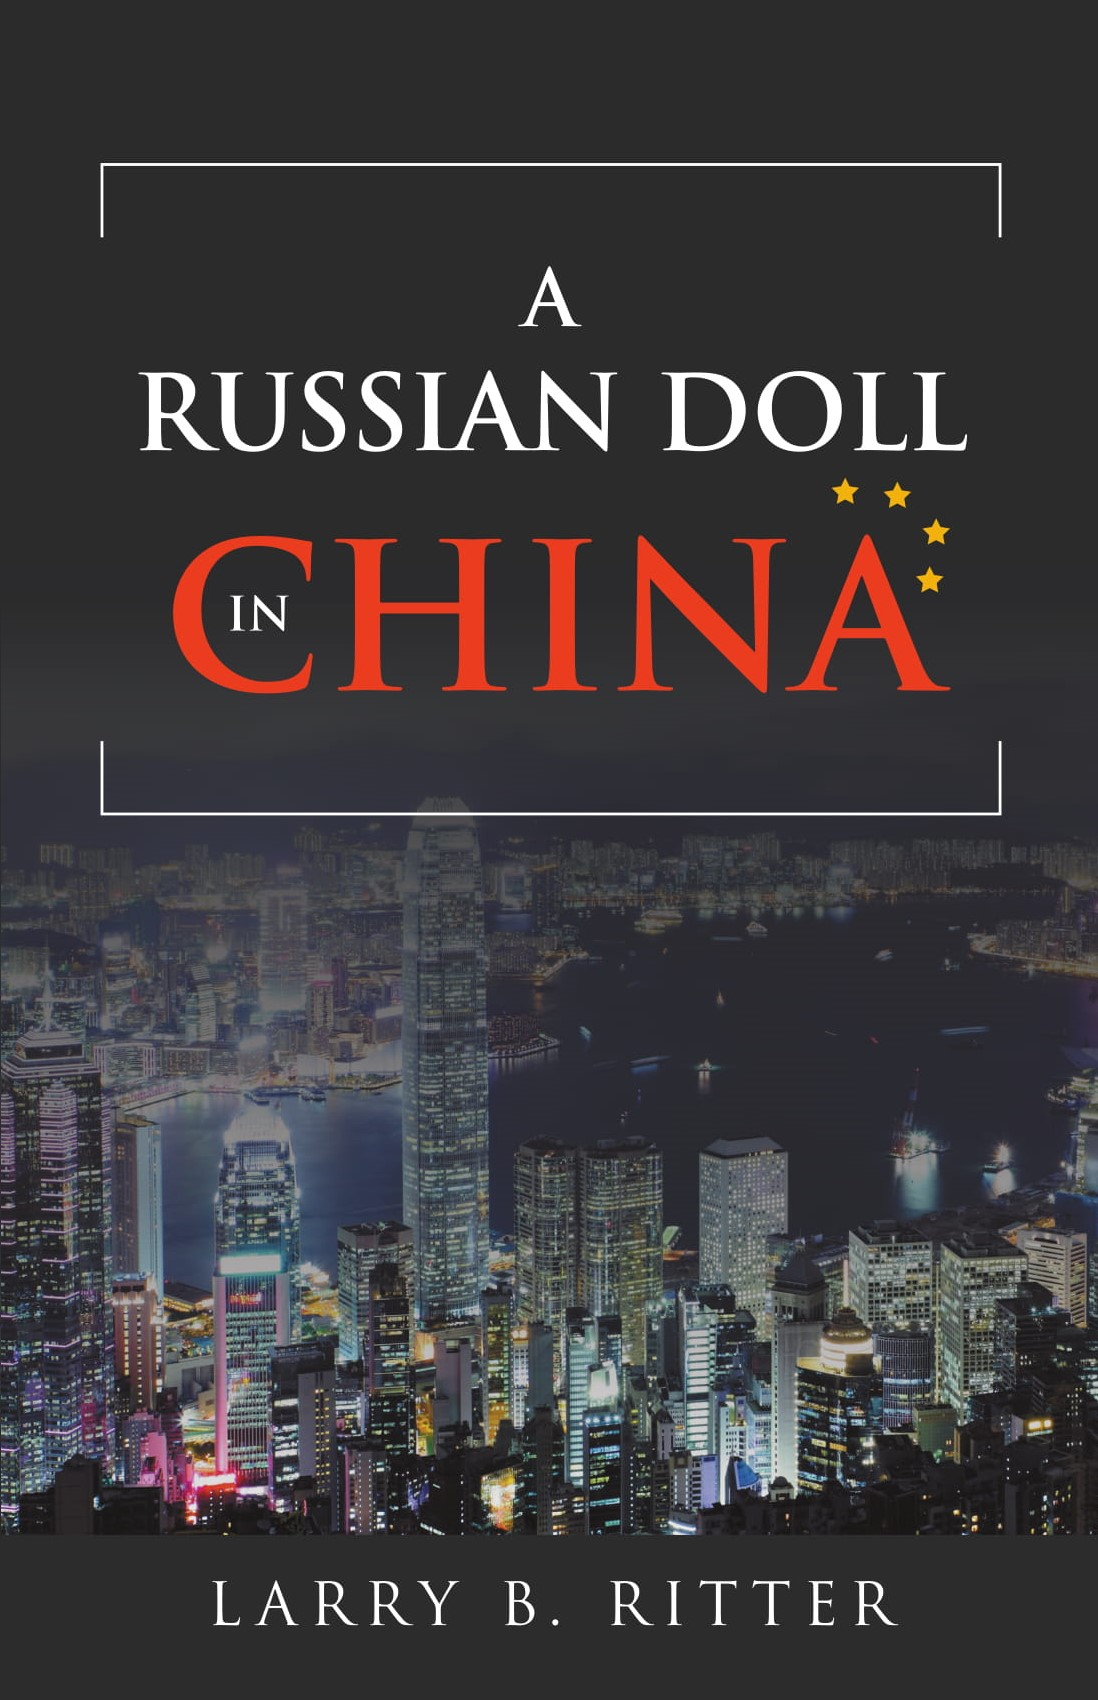 A Russian Doll in China_front